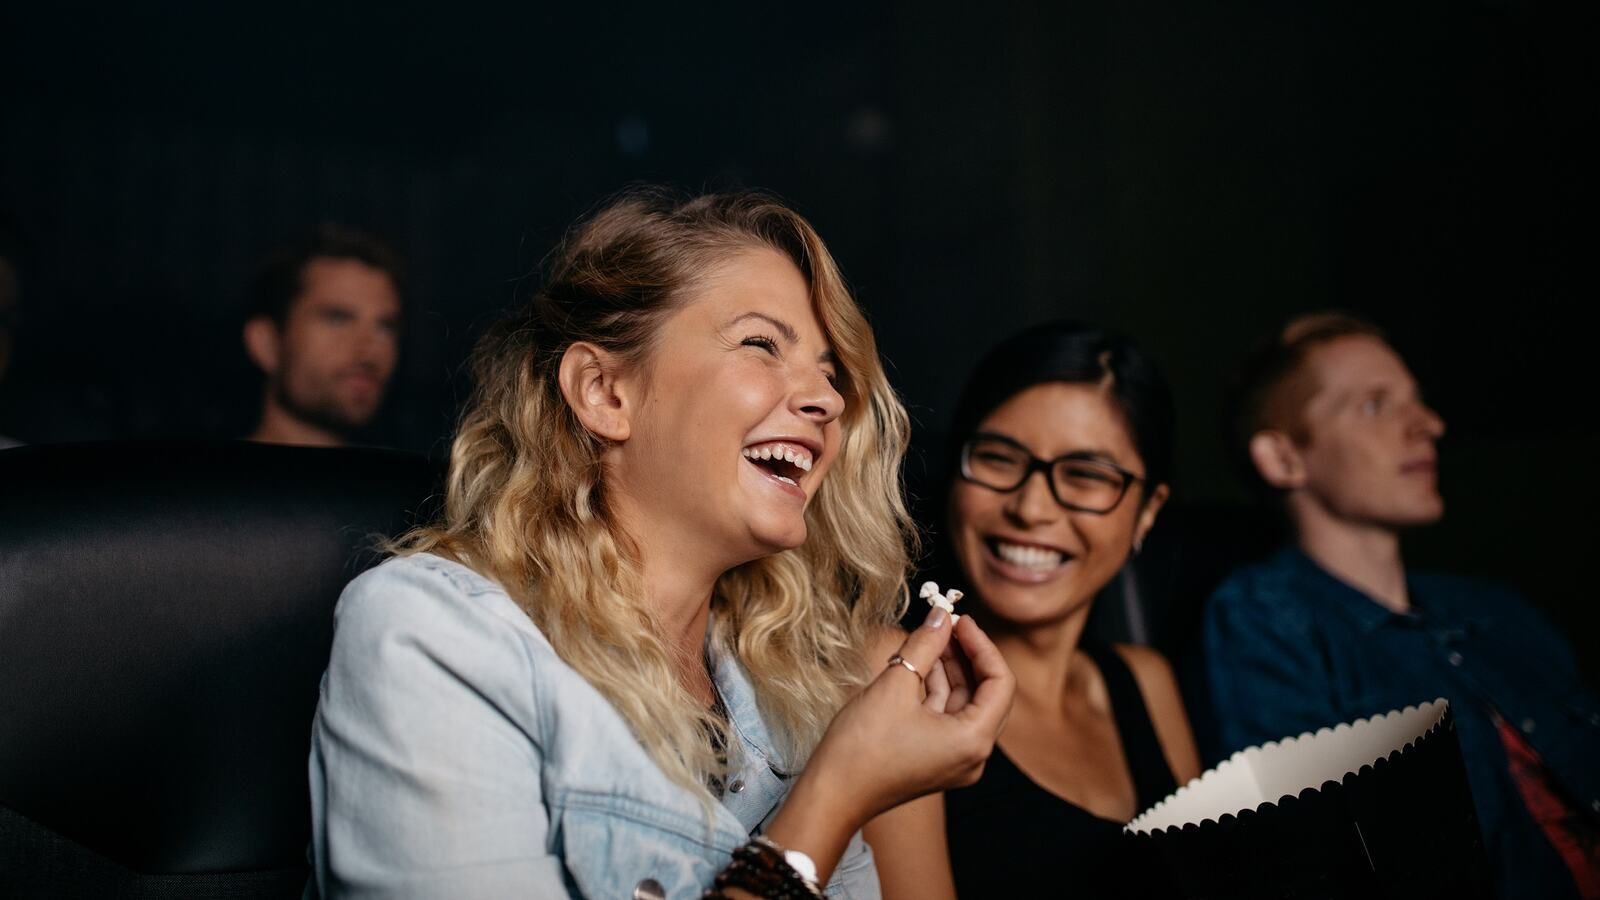 Group of people watching movie in theater. Girls laughing and watching comedy movie.